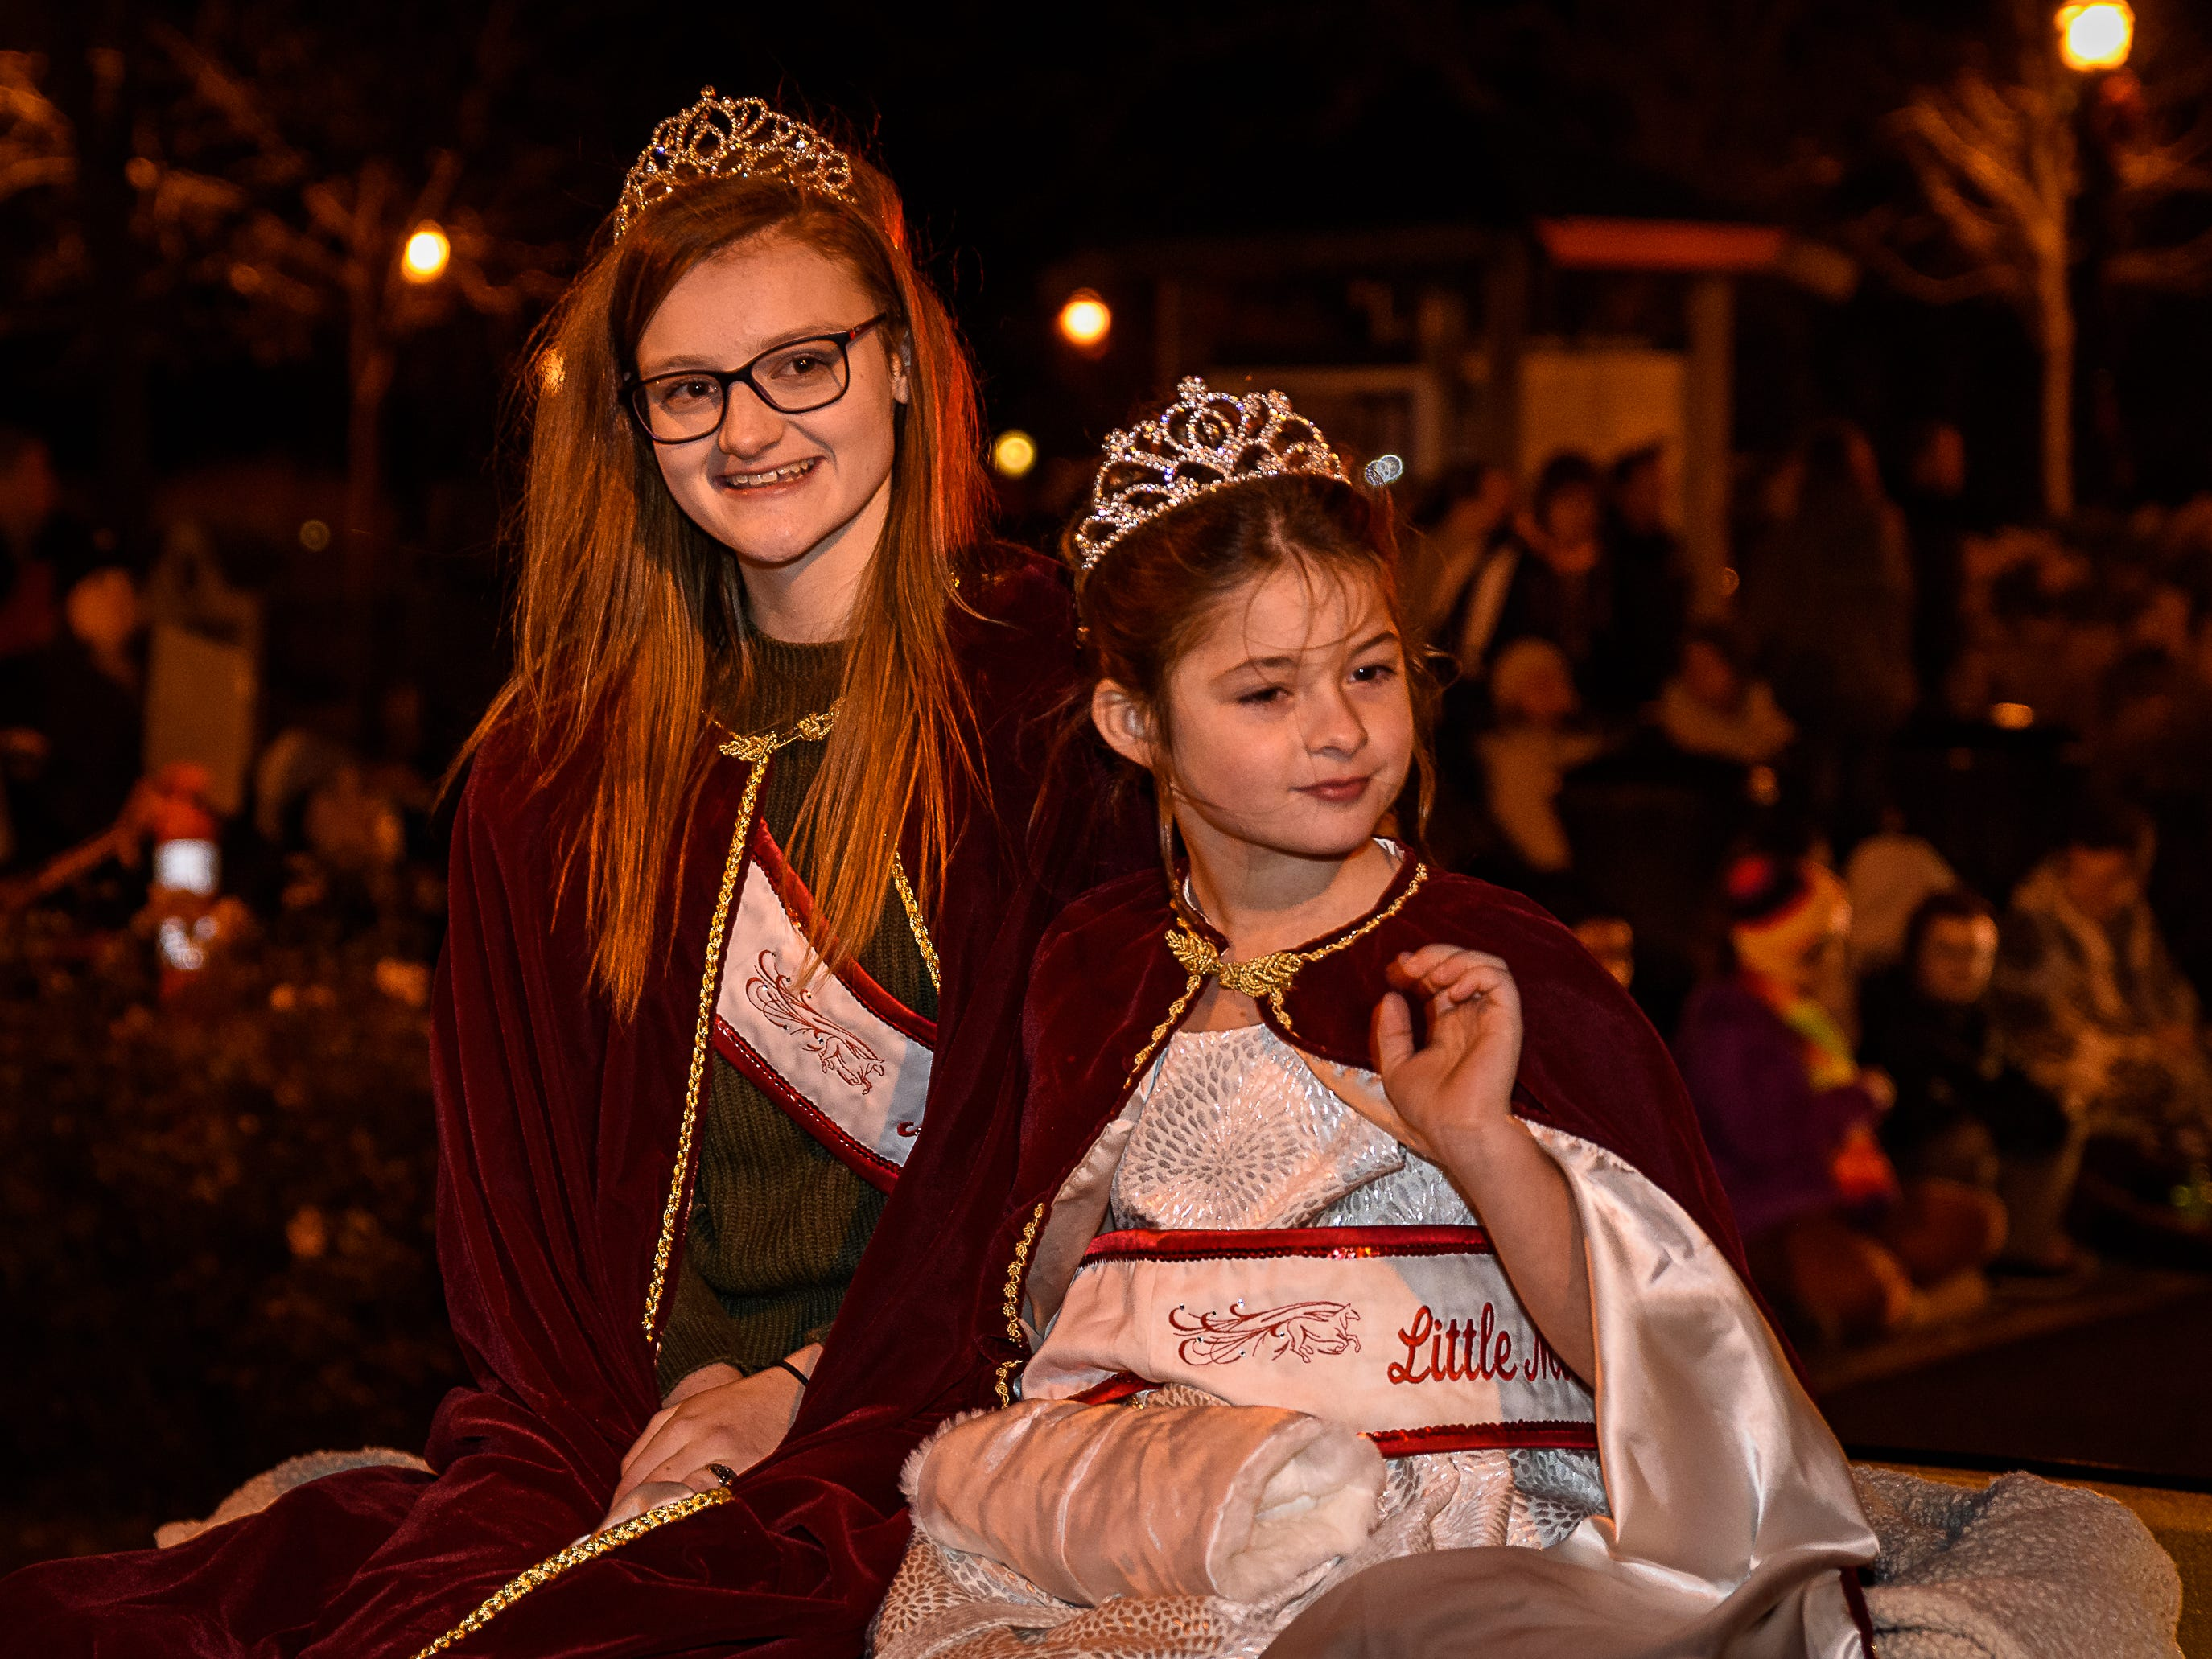 Miss Chincoteague and Little Miss Chincoteague ride in the Christmas parade.